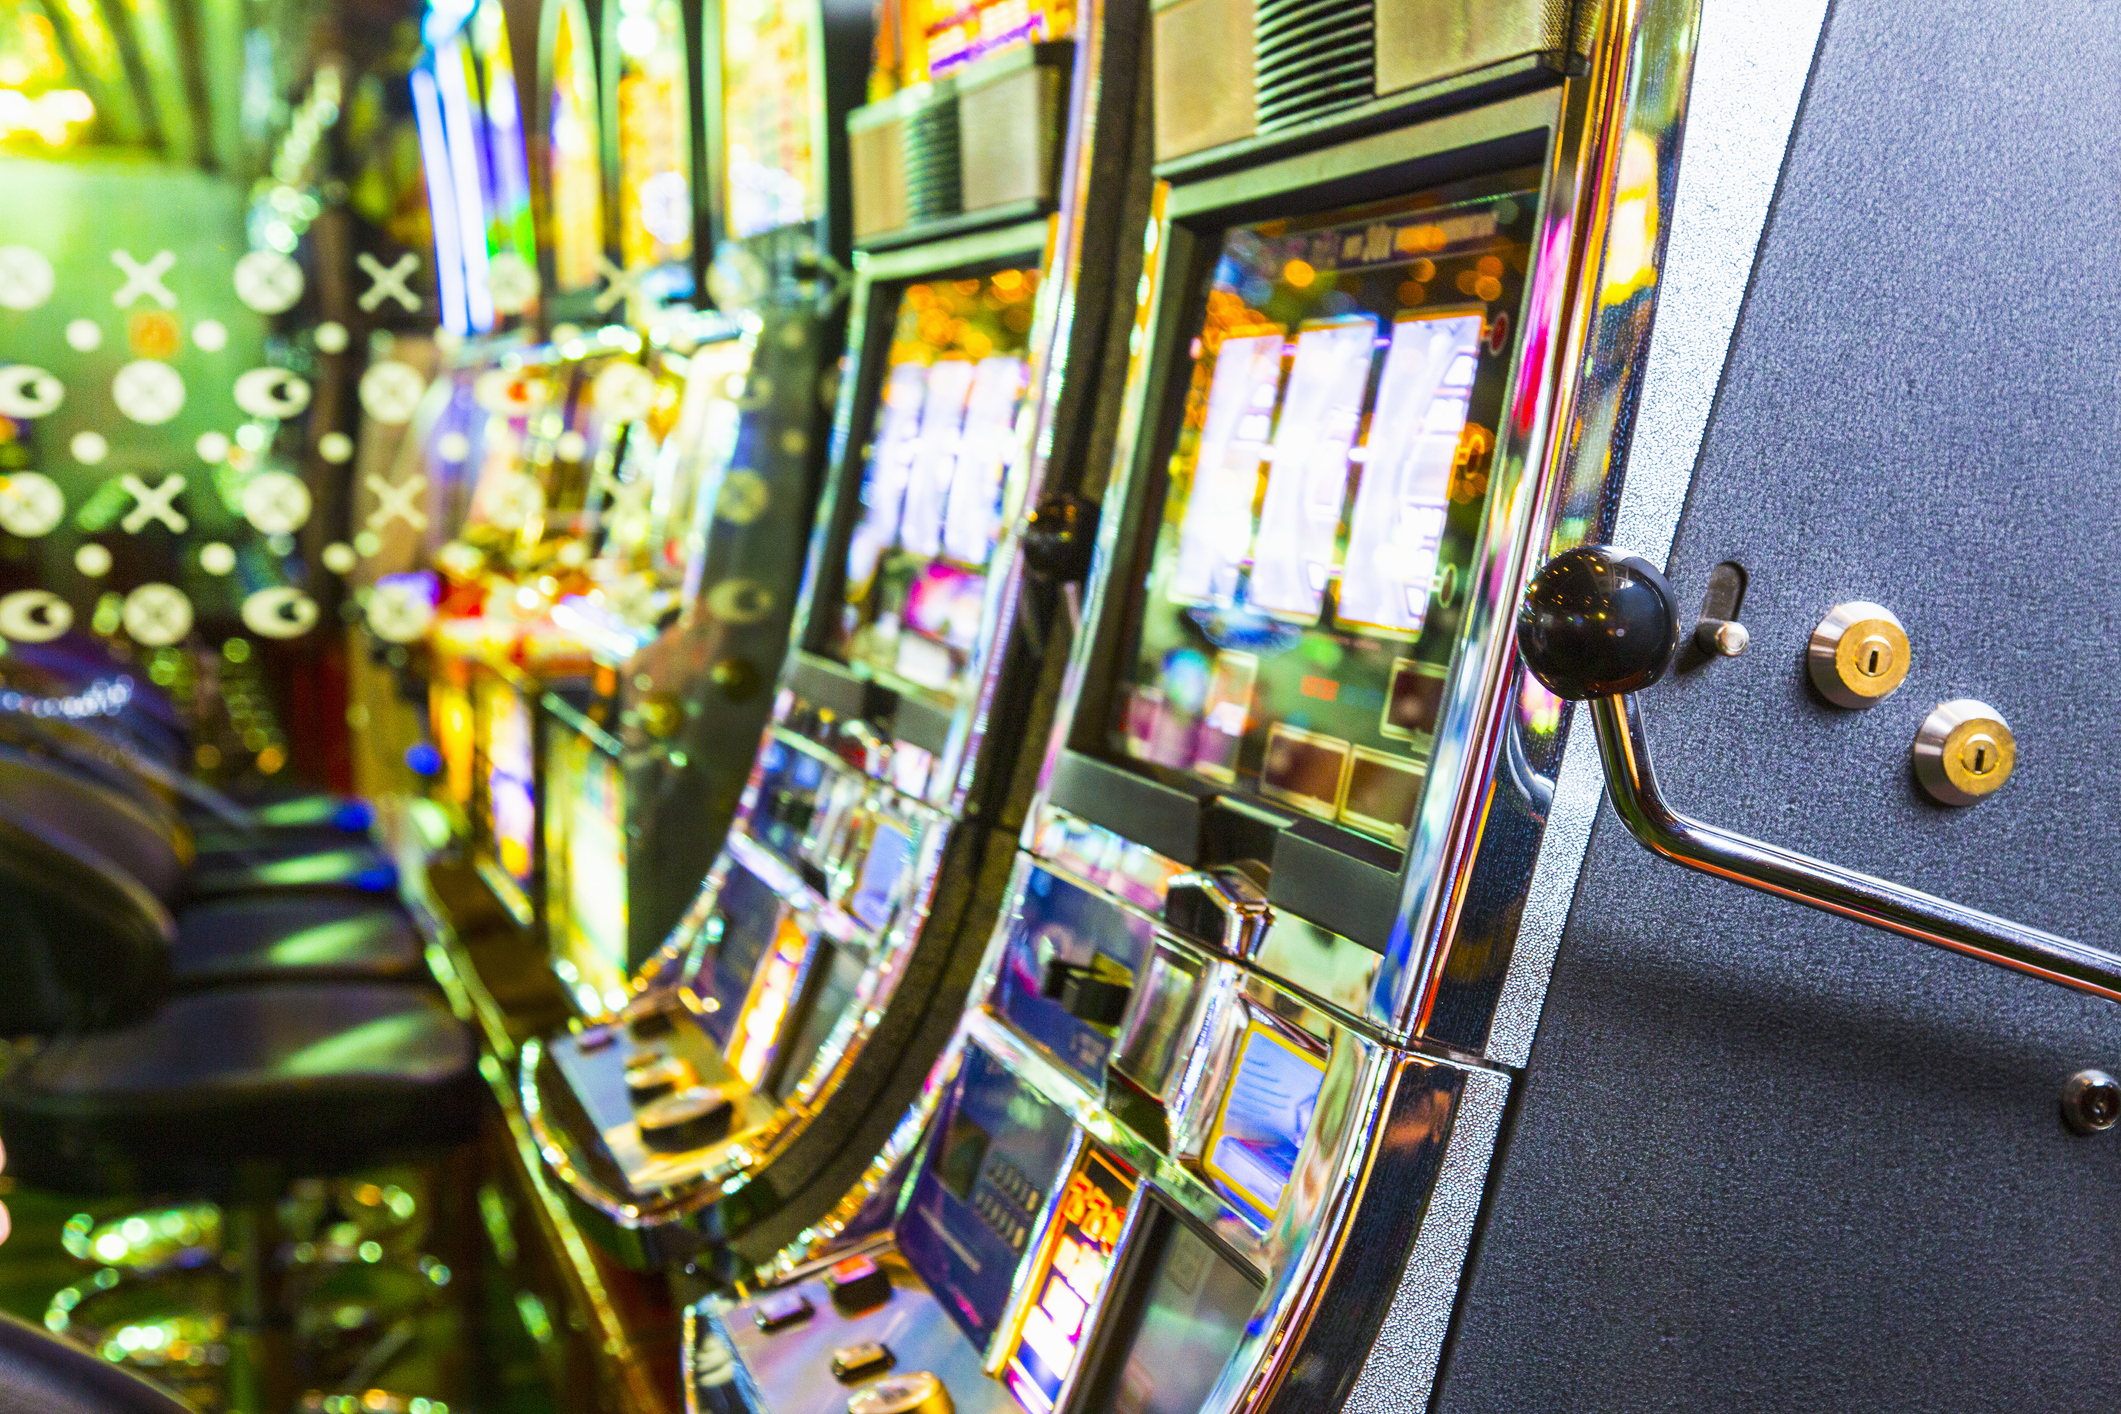 Third slot jackpot hit for NJ woman in six months.